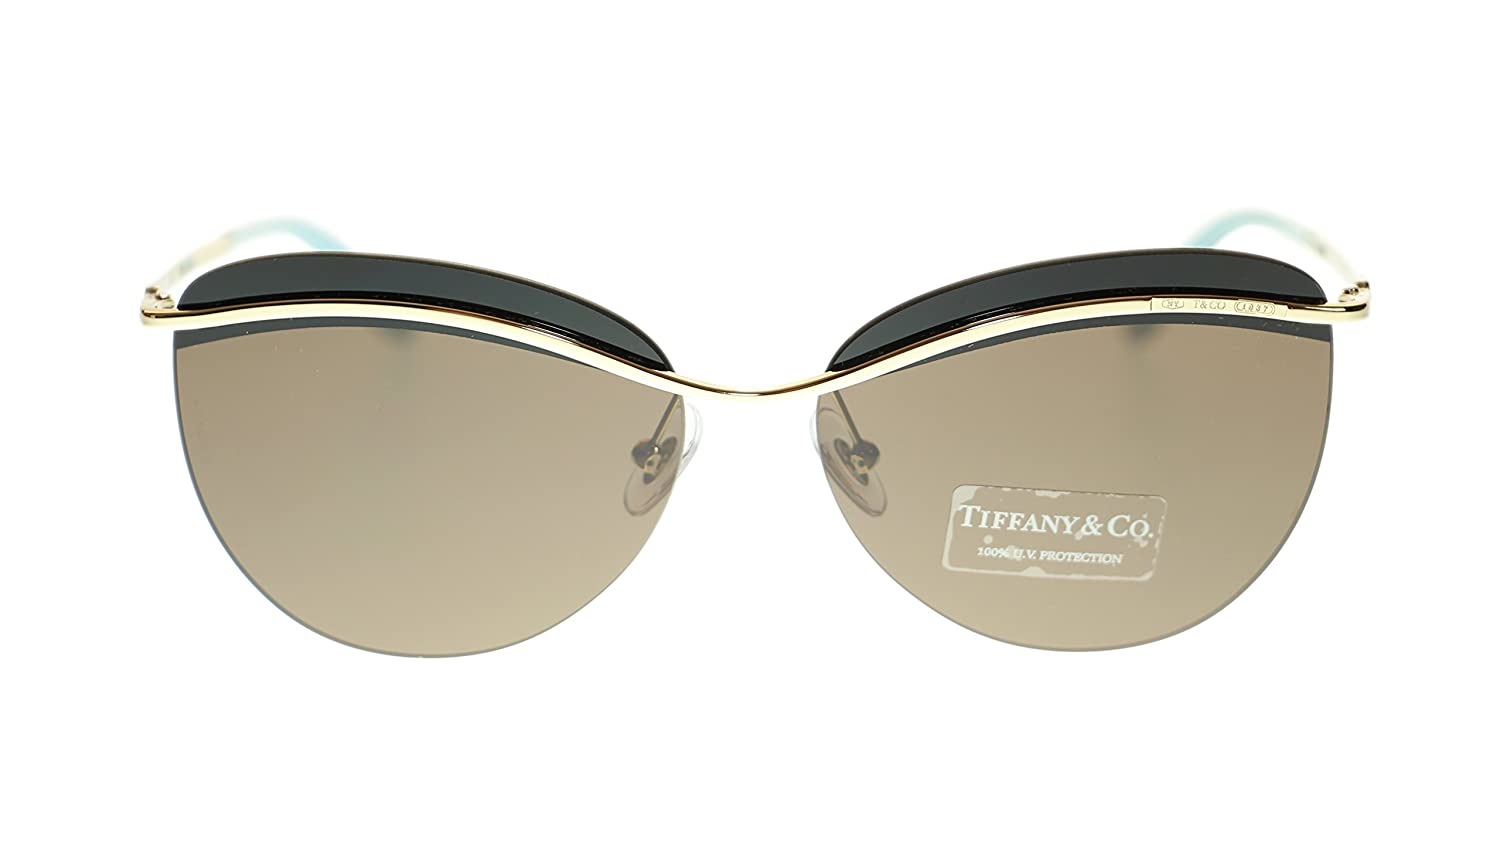 41fad4264986 Amazon.com  TIFFANY   CO Butterfly Women s Sunglasses TF3057 602173 Pale  Gold Brown 60mm Authentic  Clothing